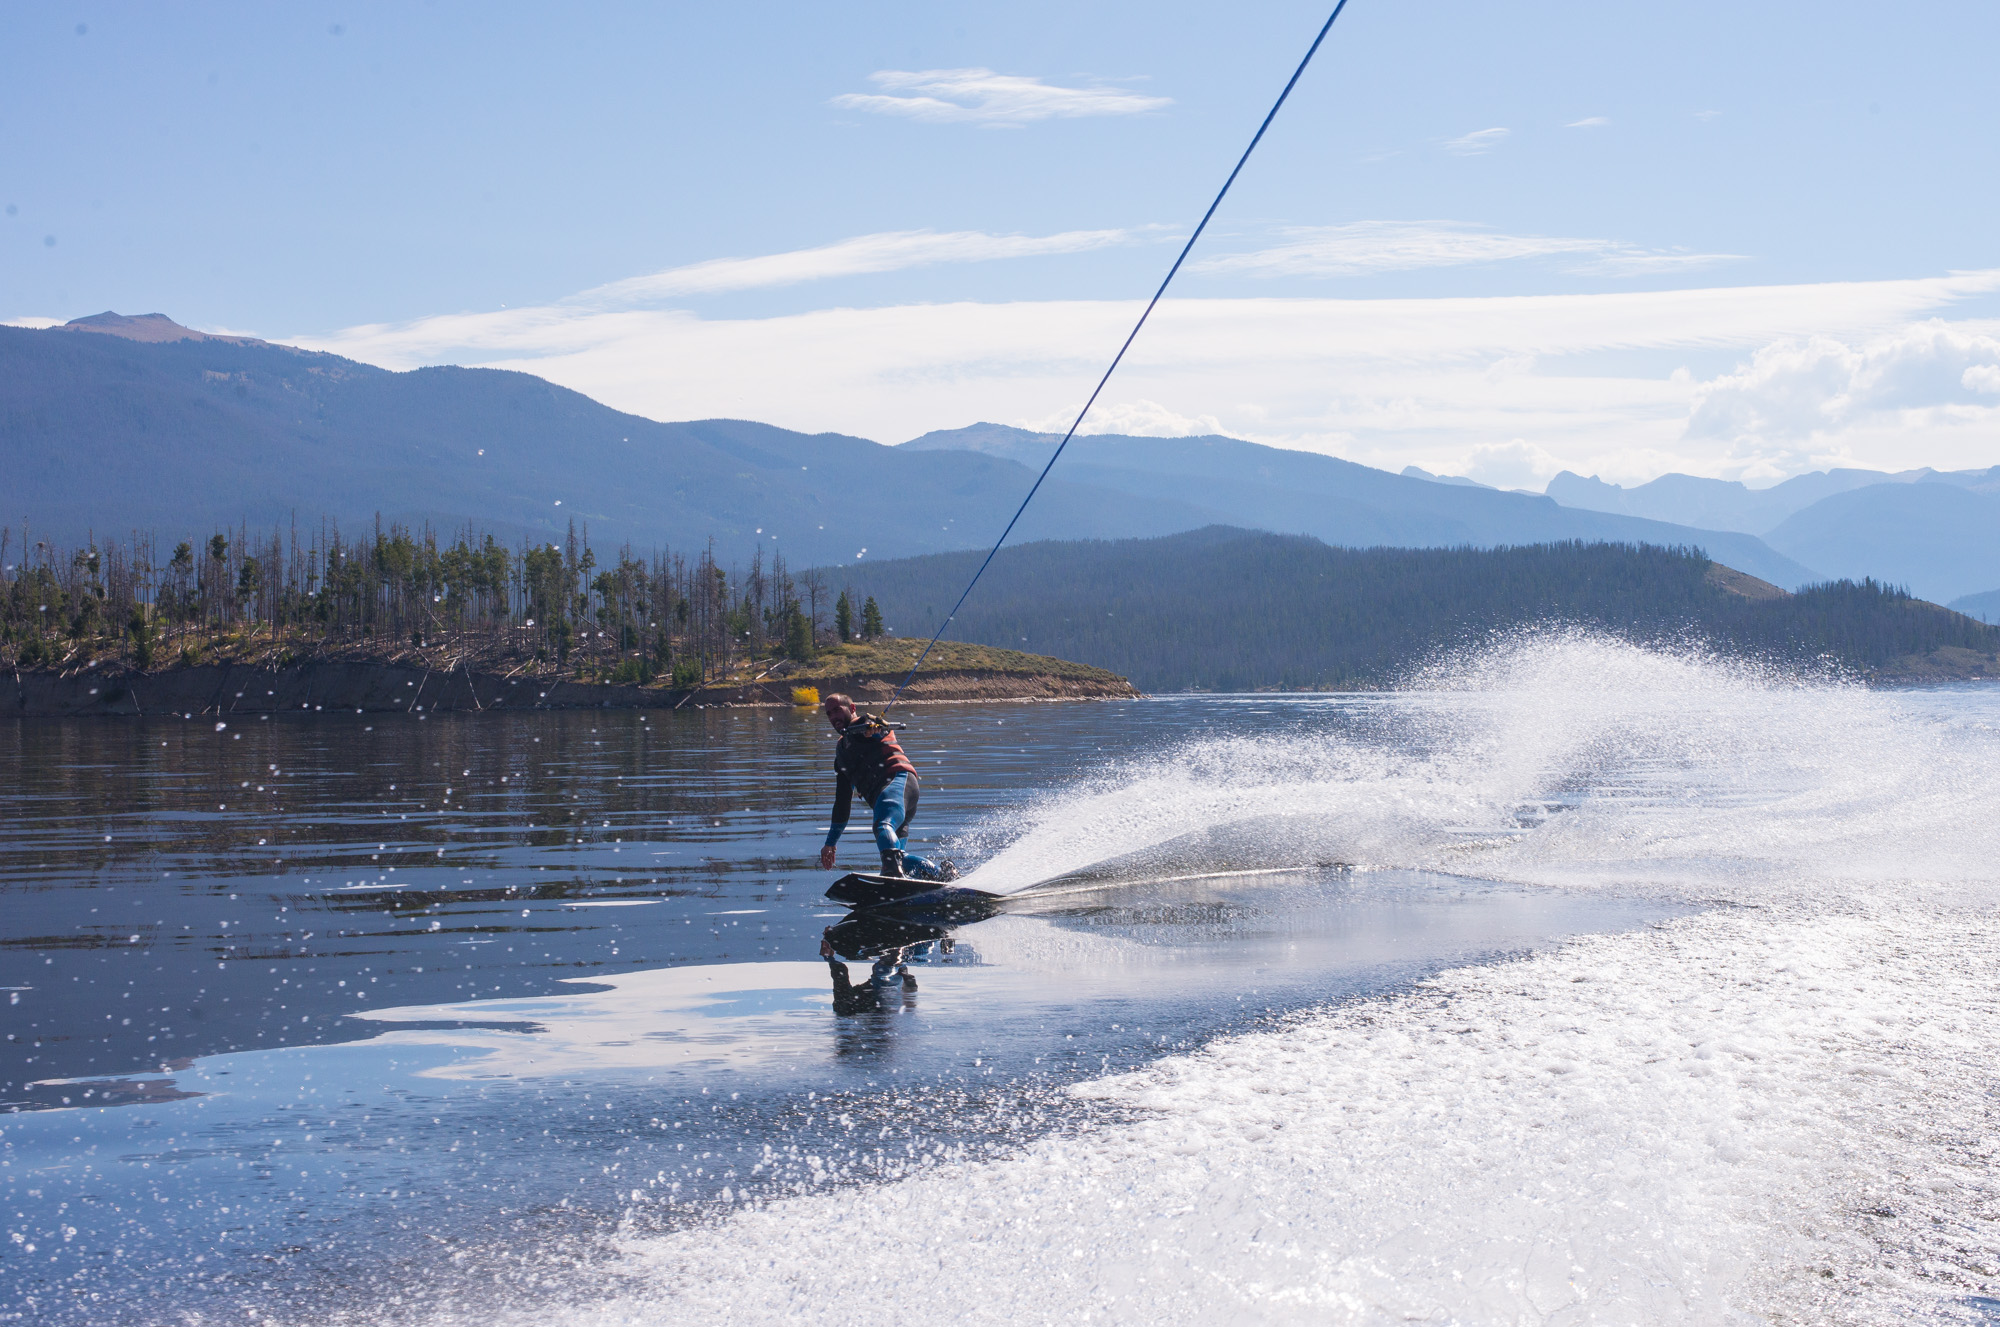 Lake Granby glass wakeboarding